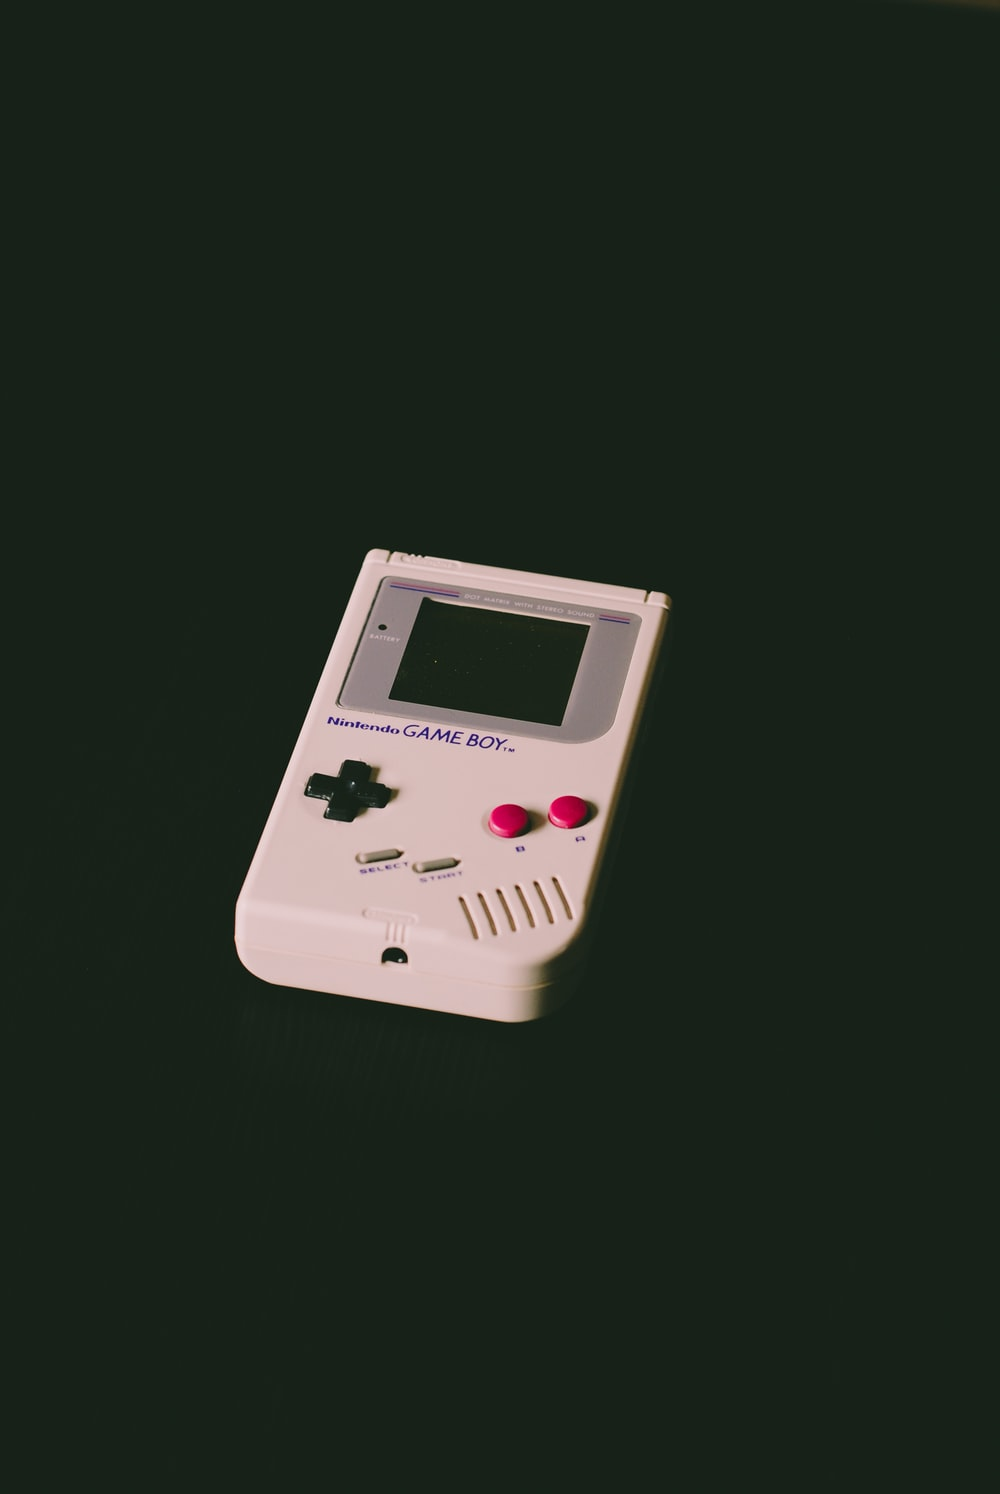 turned off Nintendo Game Boy